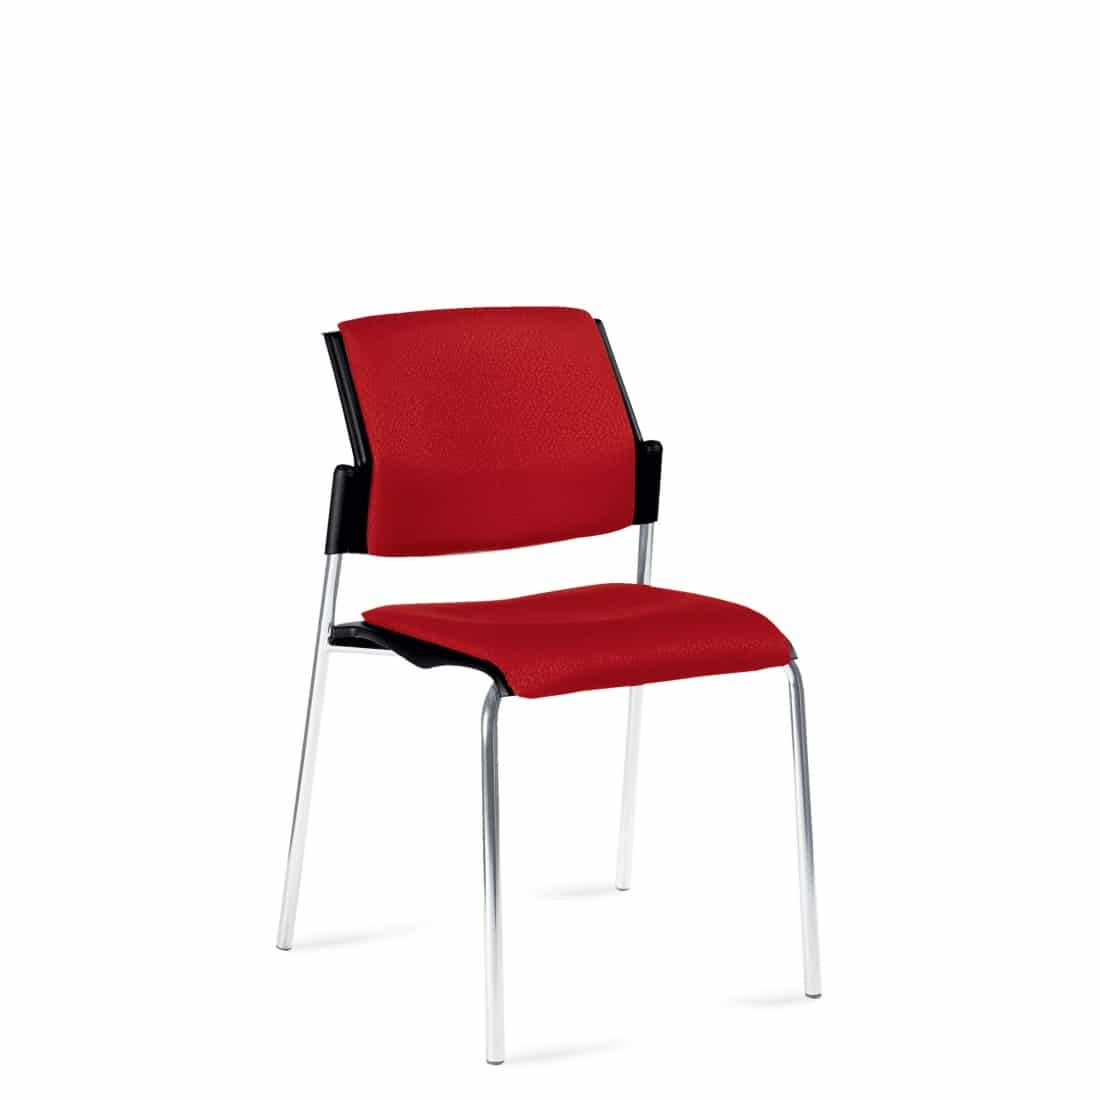 Armless Stacking Chair, Red Upholstered Seat U0026 Back With Chrome Frame (6511)